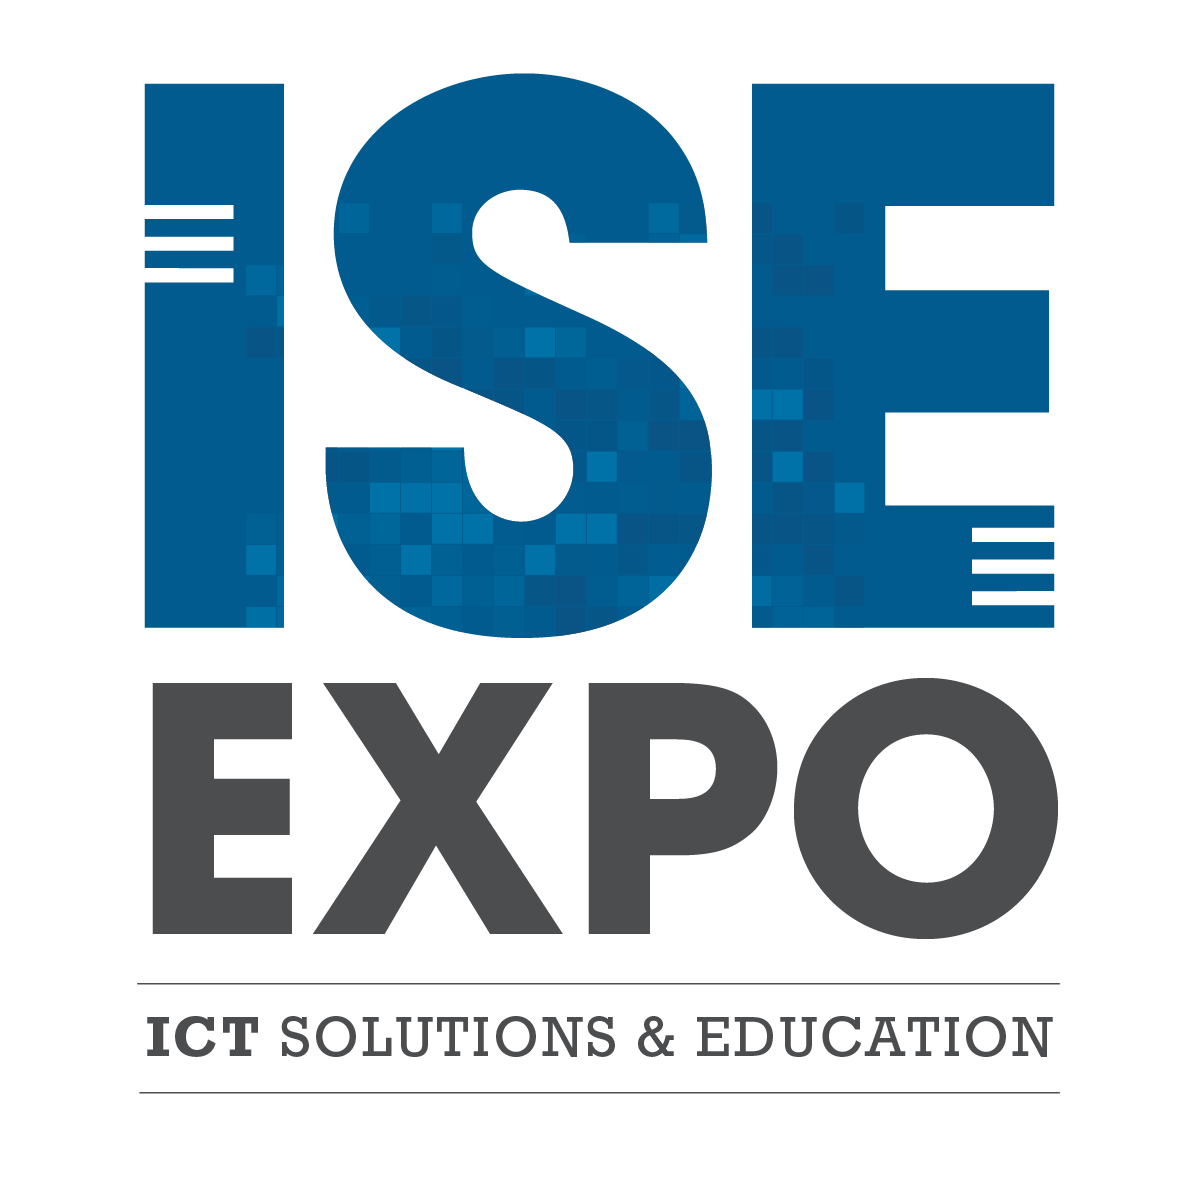 ISE EXPO 2018 - ICT Solutions & Education